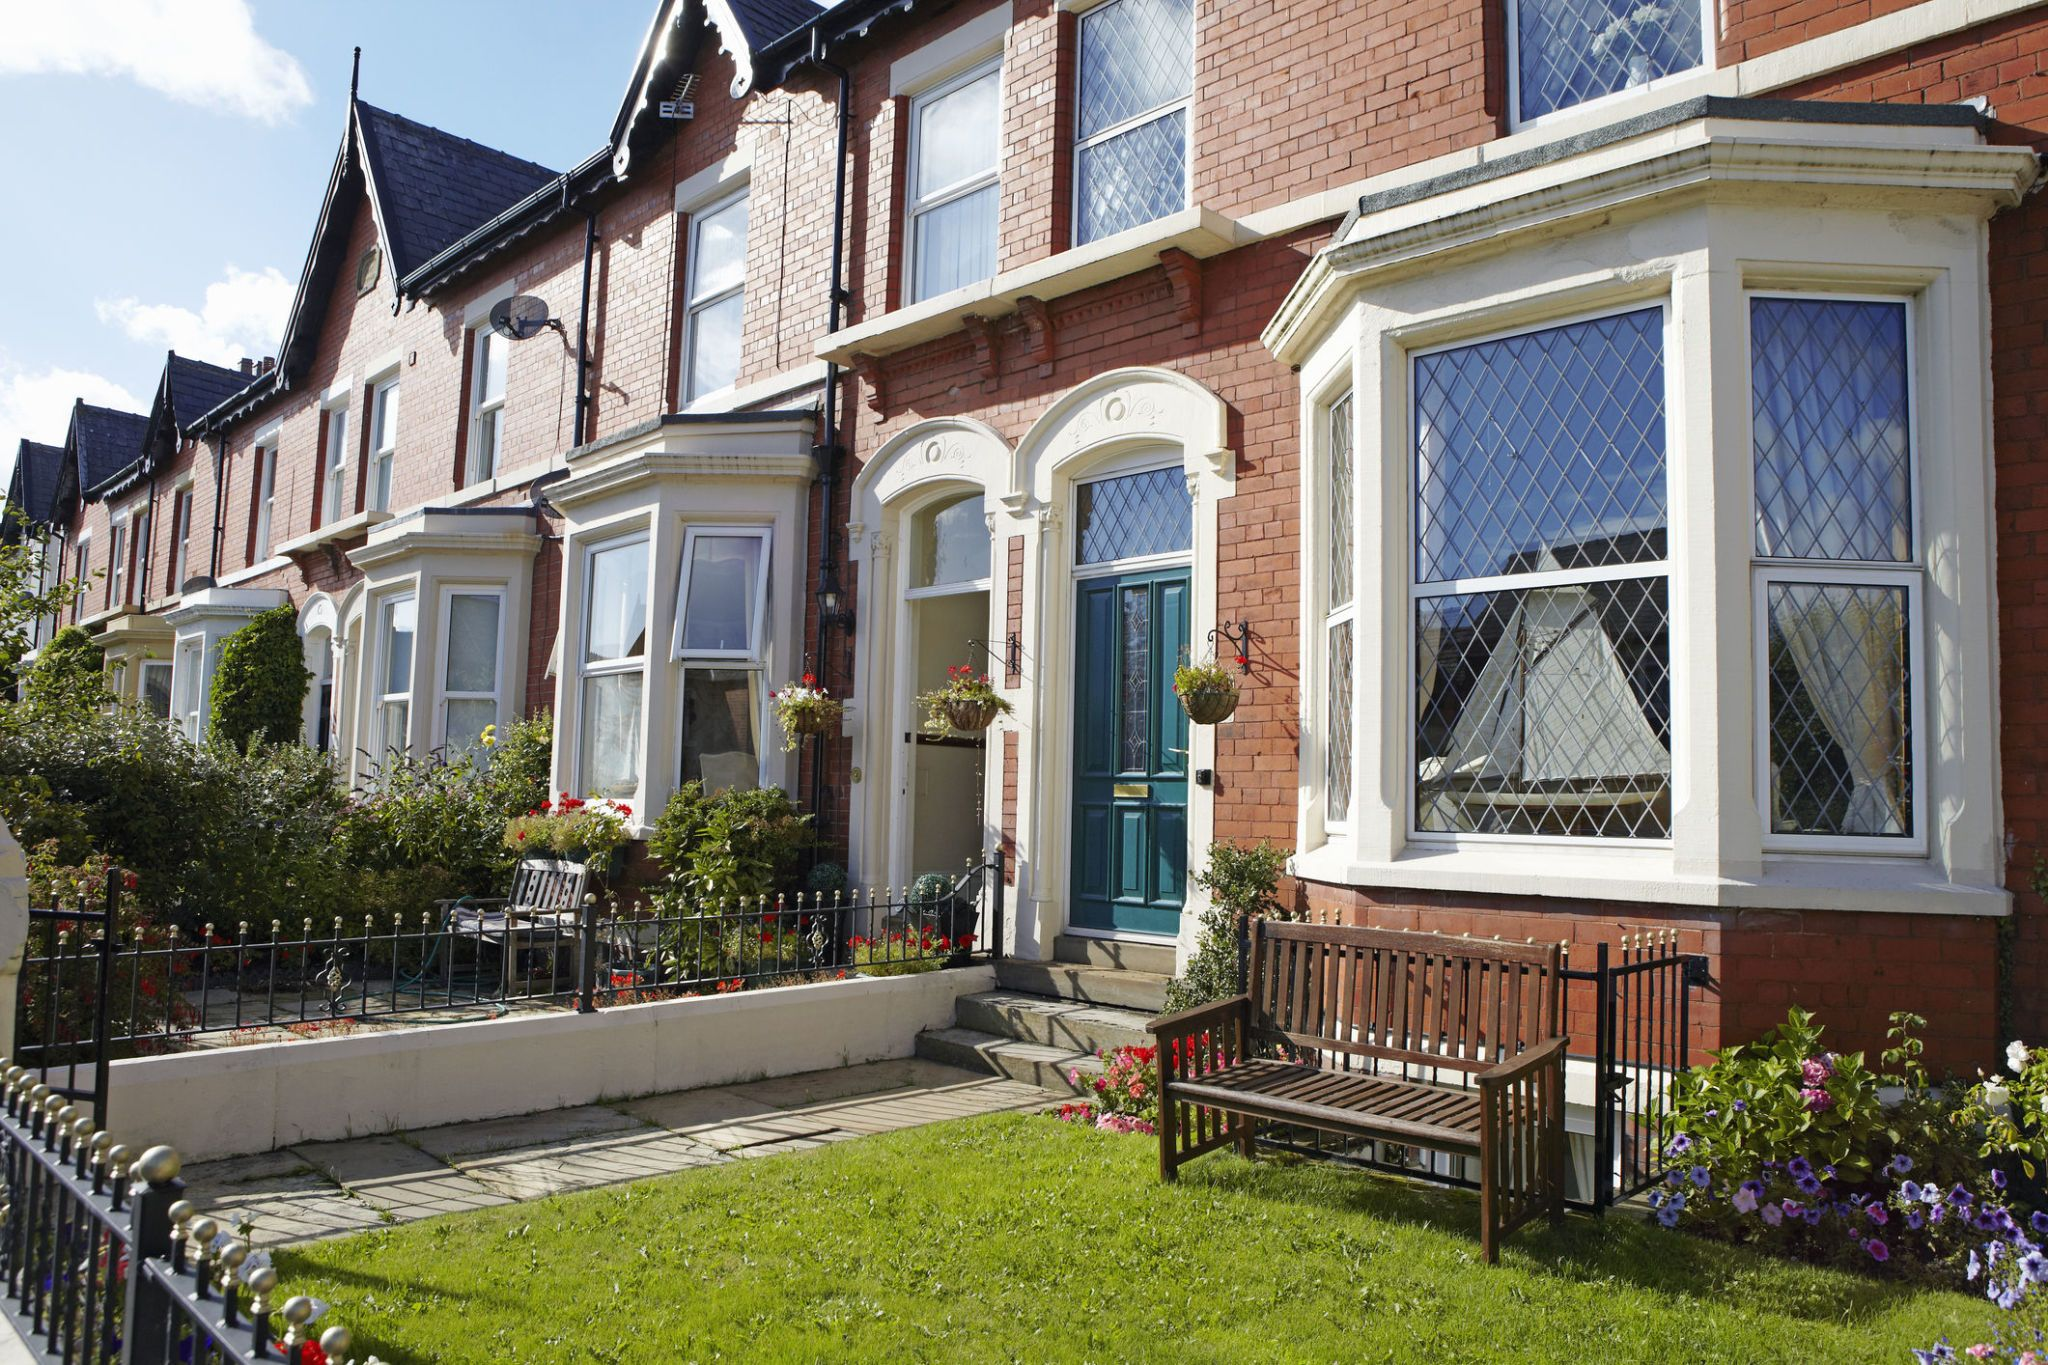 Attirant Gardens At Front Of Victorian Terraced Houses